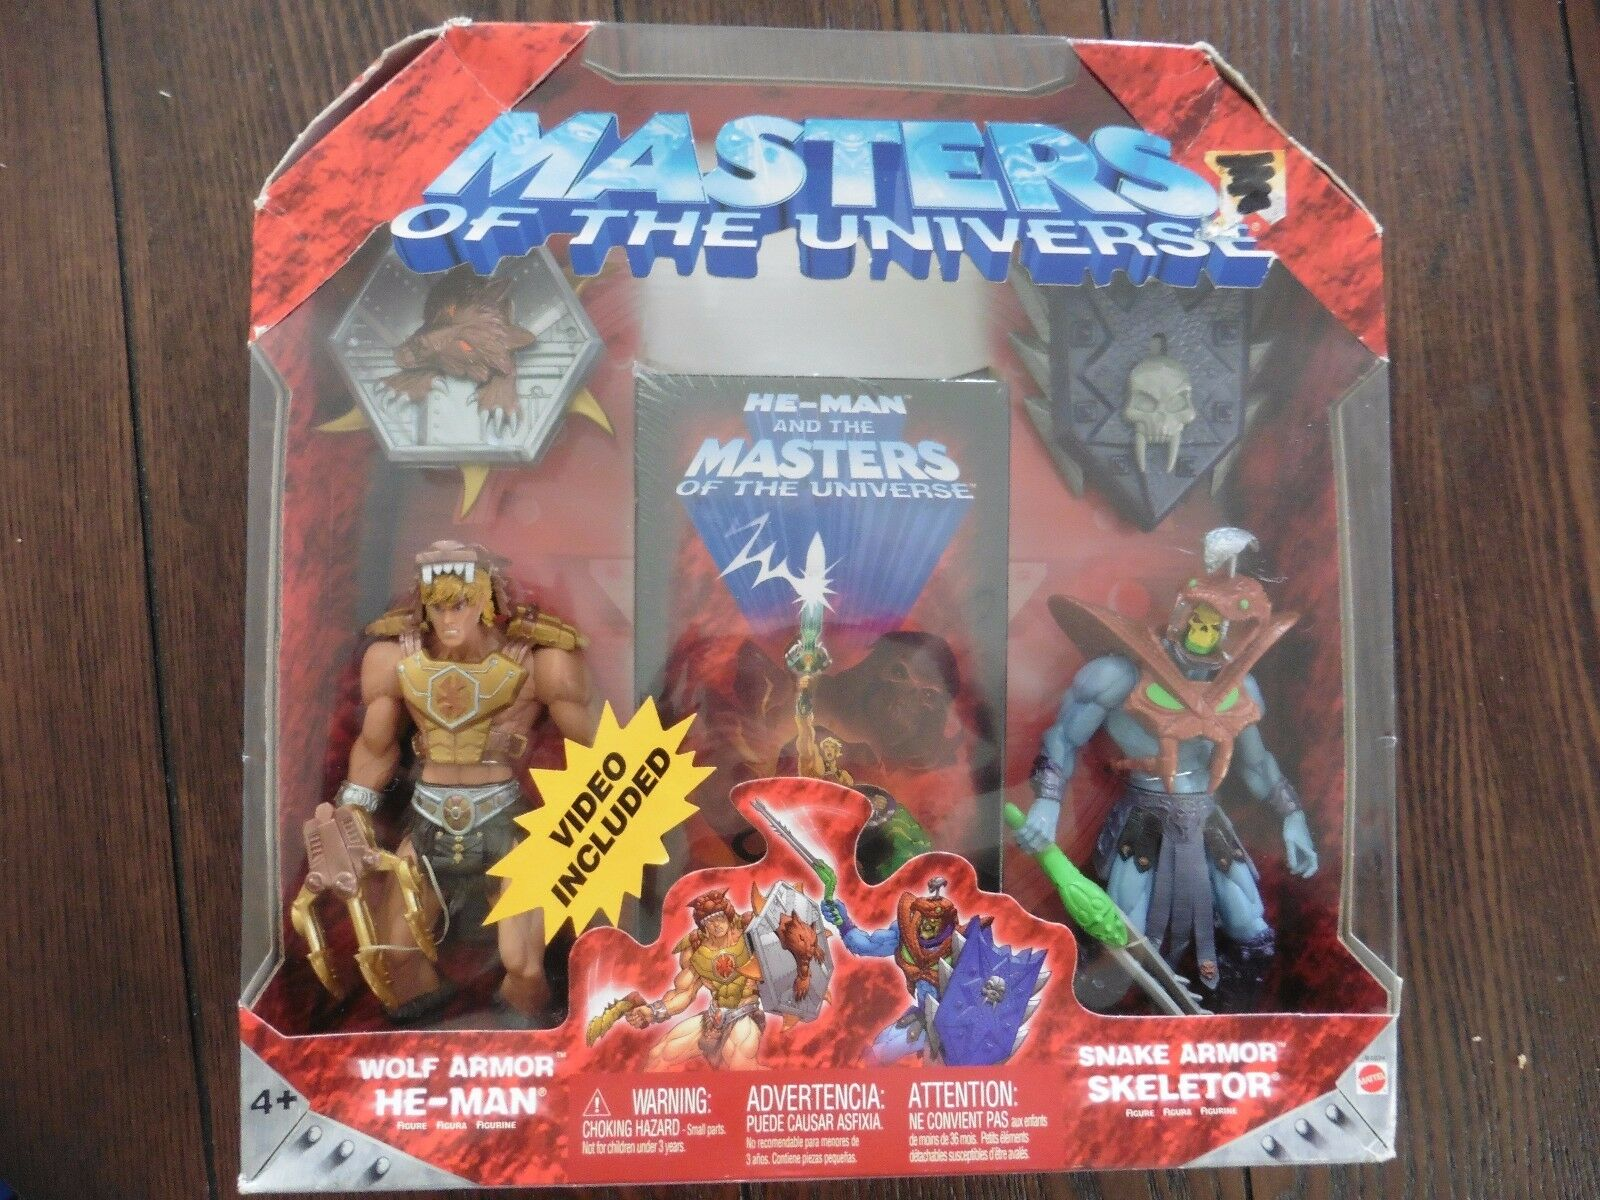 Maîtres de l'univers Masters of the Universe 200x Wolf Armor He-man + Snake Armor squelettor